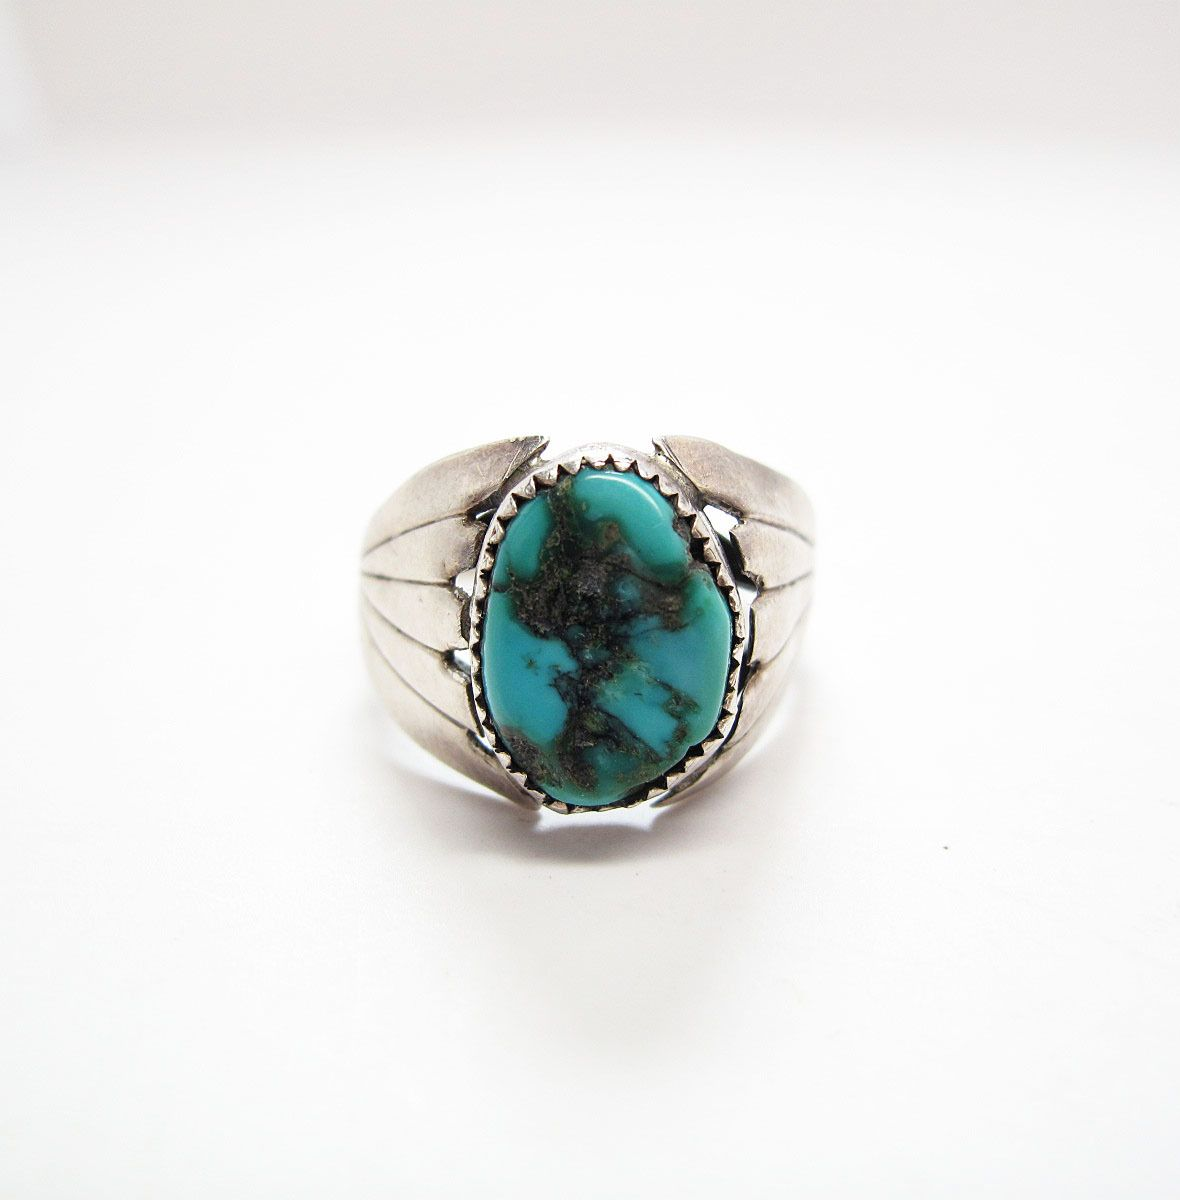 Vintage Native American 800 Silver Turquoise Ring Size 9 from thevintagegenie on Ruby Lane